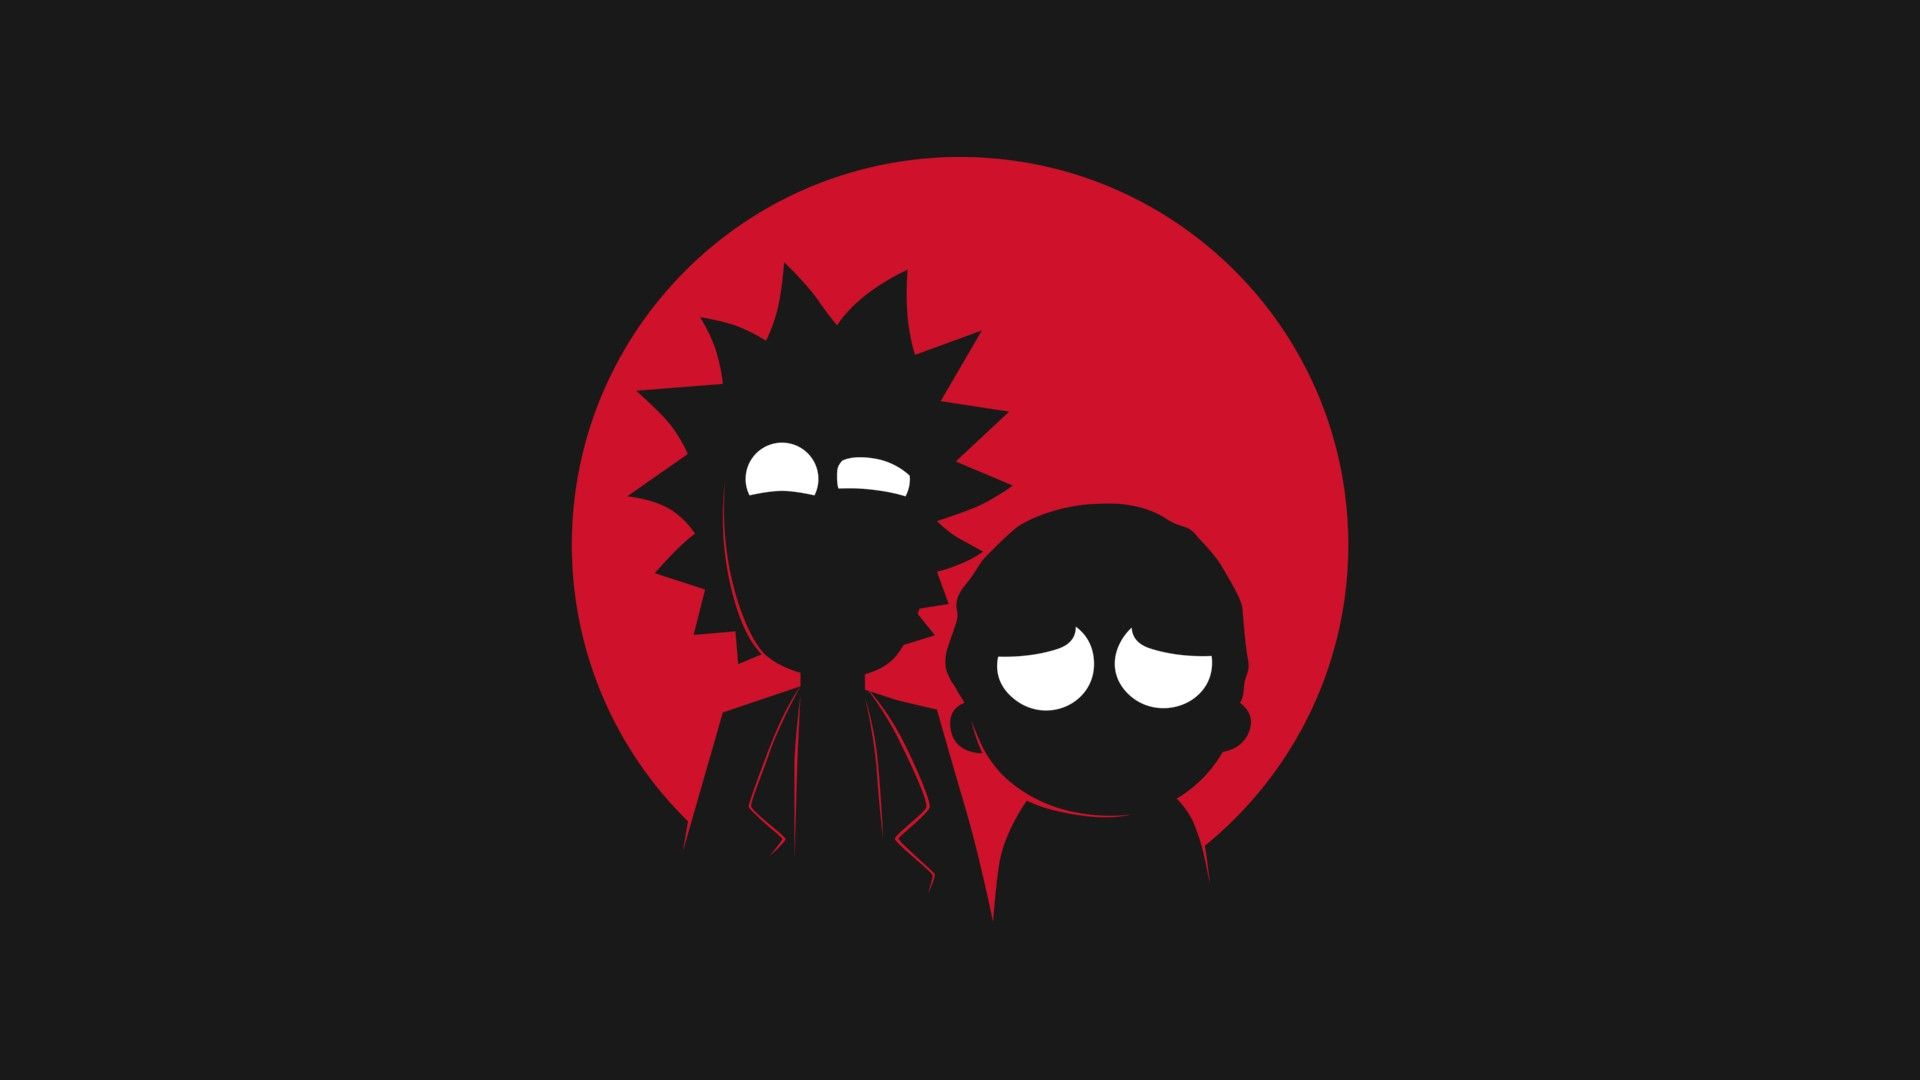 Rick And Morty Desktop Wallpapers Top Free Rick And Morty Desktop Backgrounds Wallpaperaccess